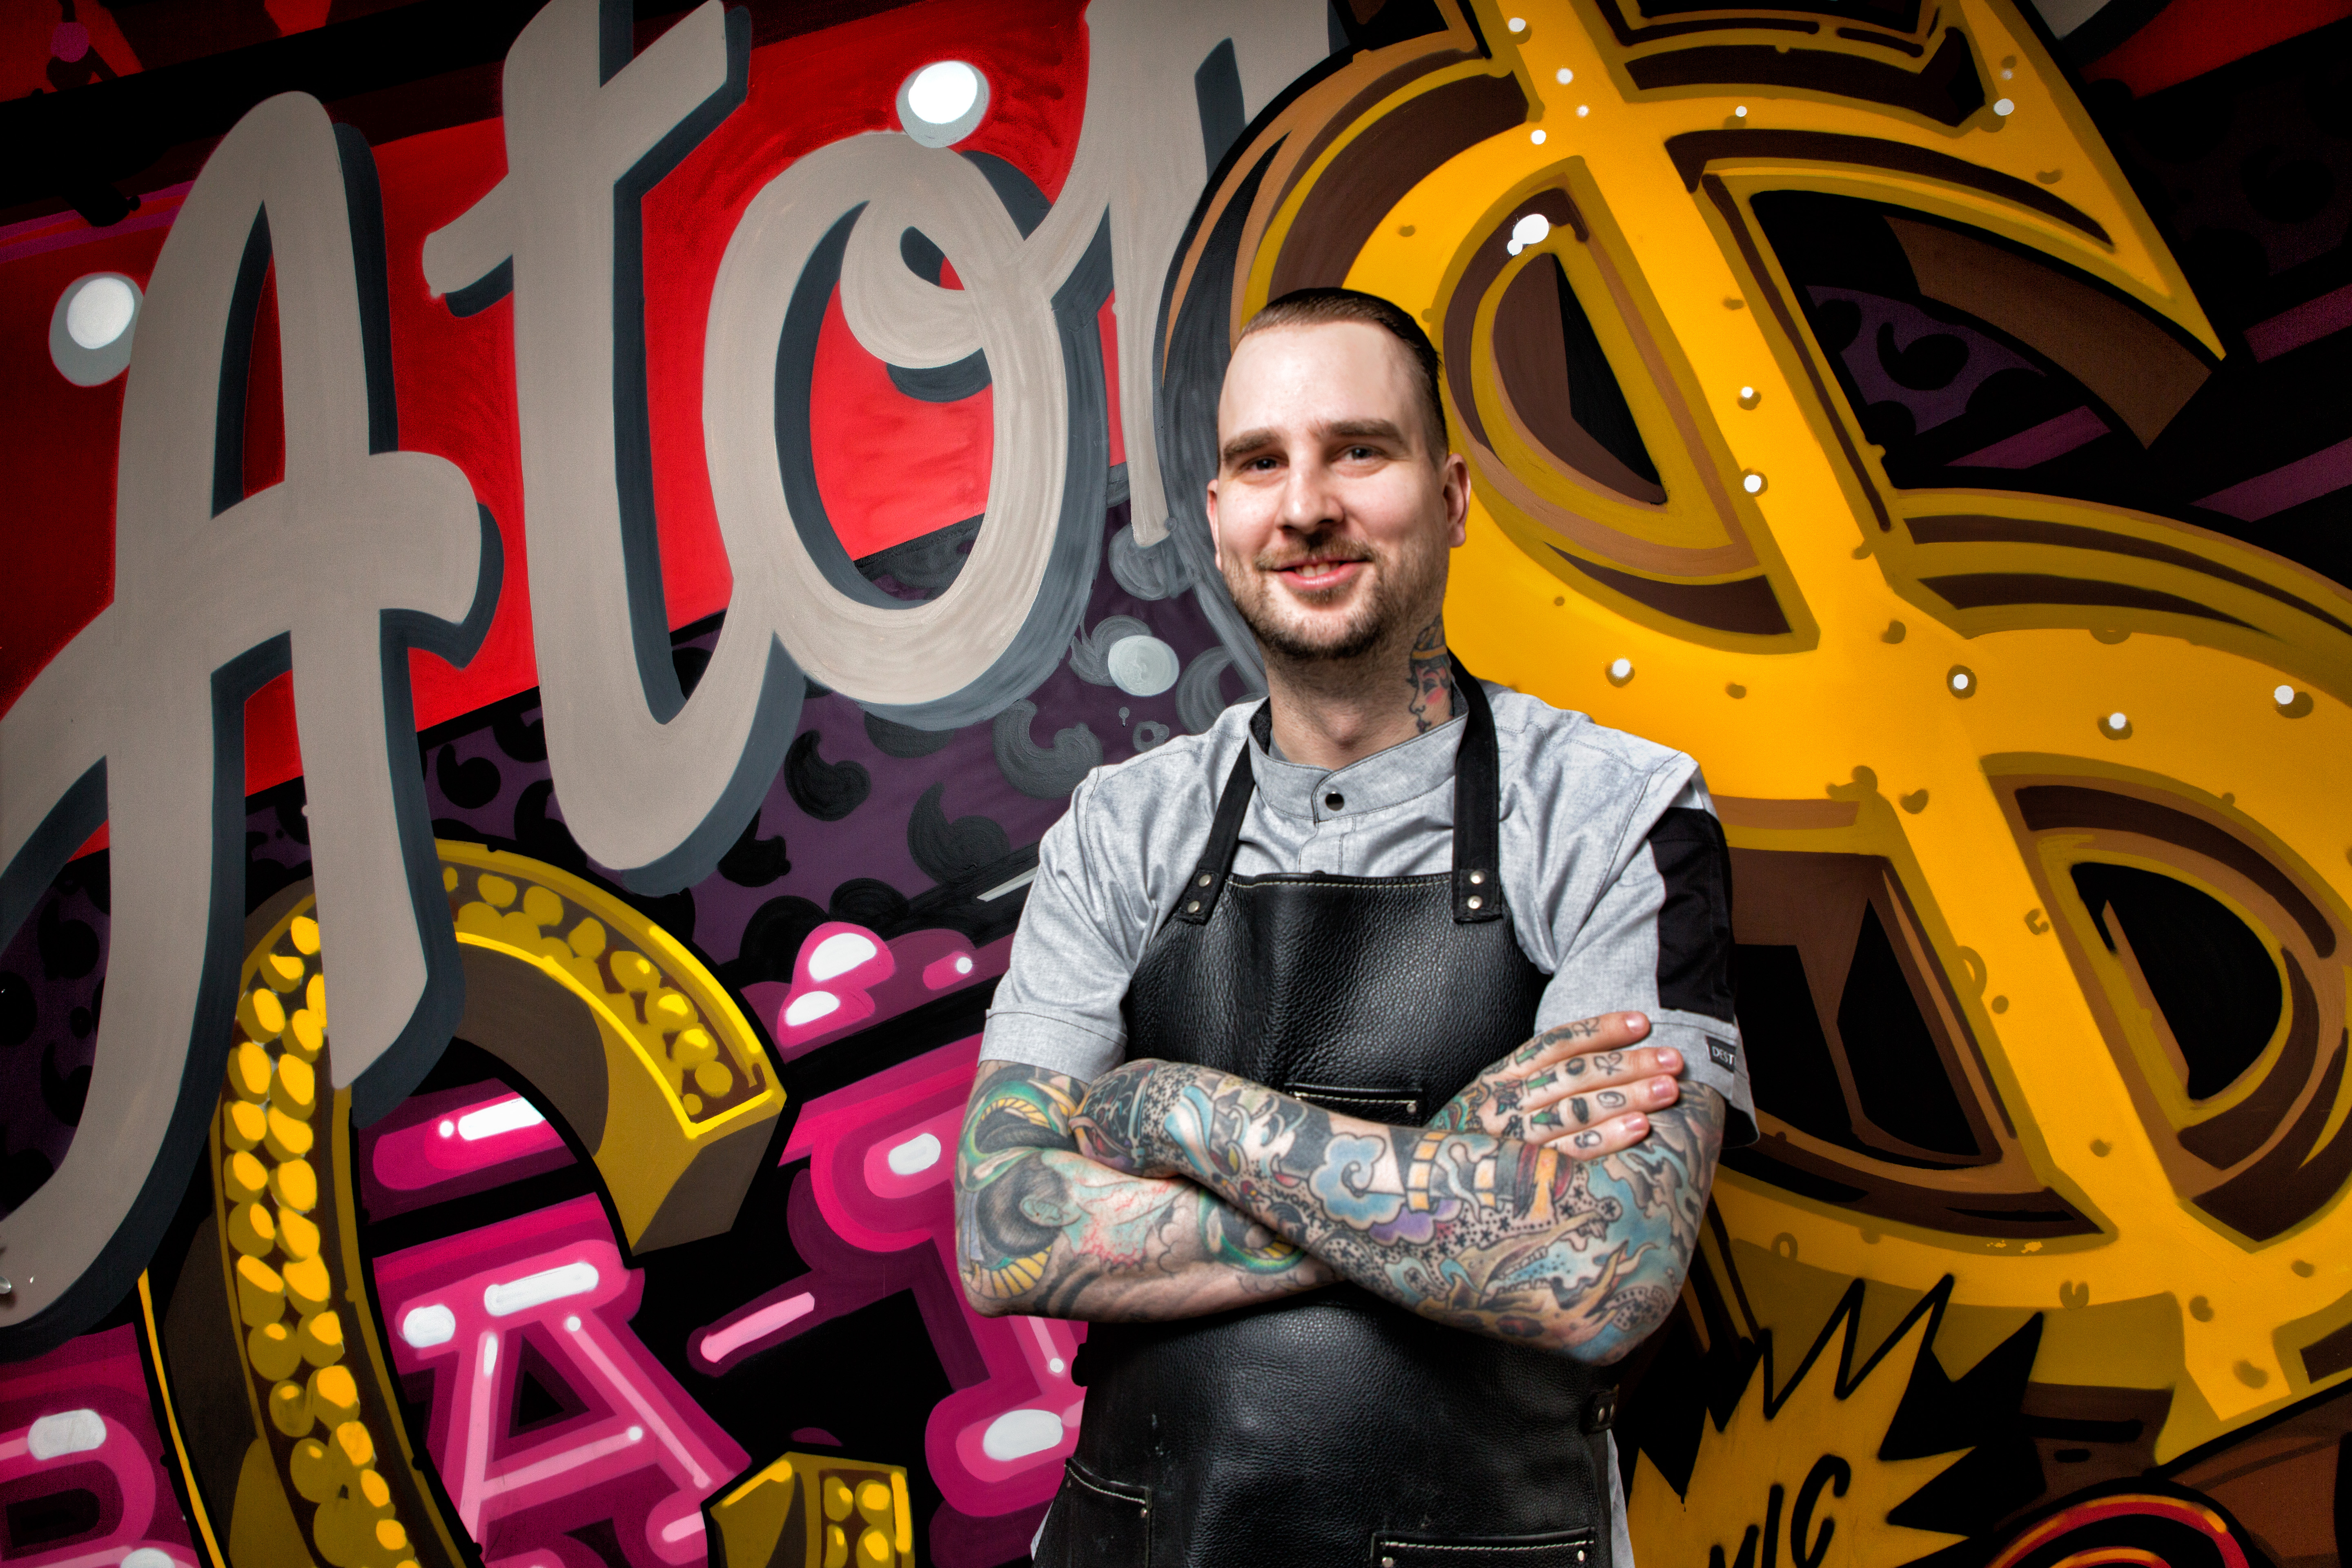 A chef with tattoos stands in front of a graffiti wall